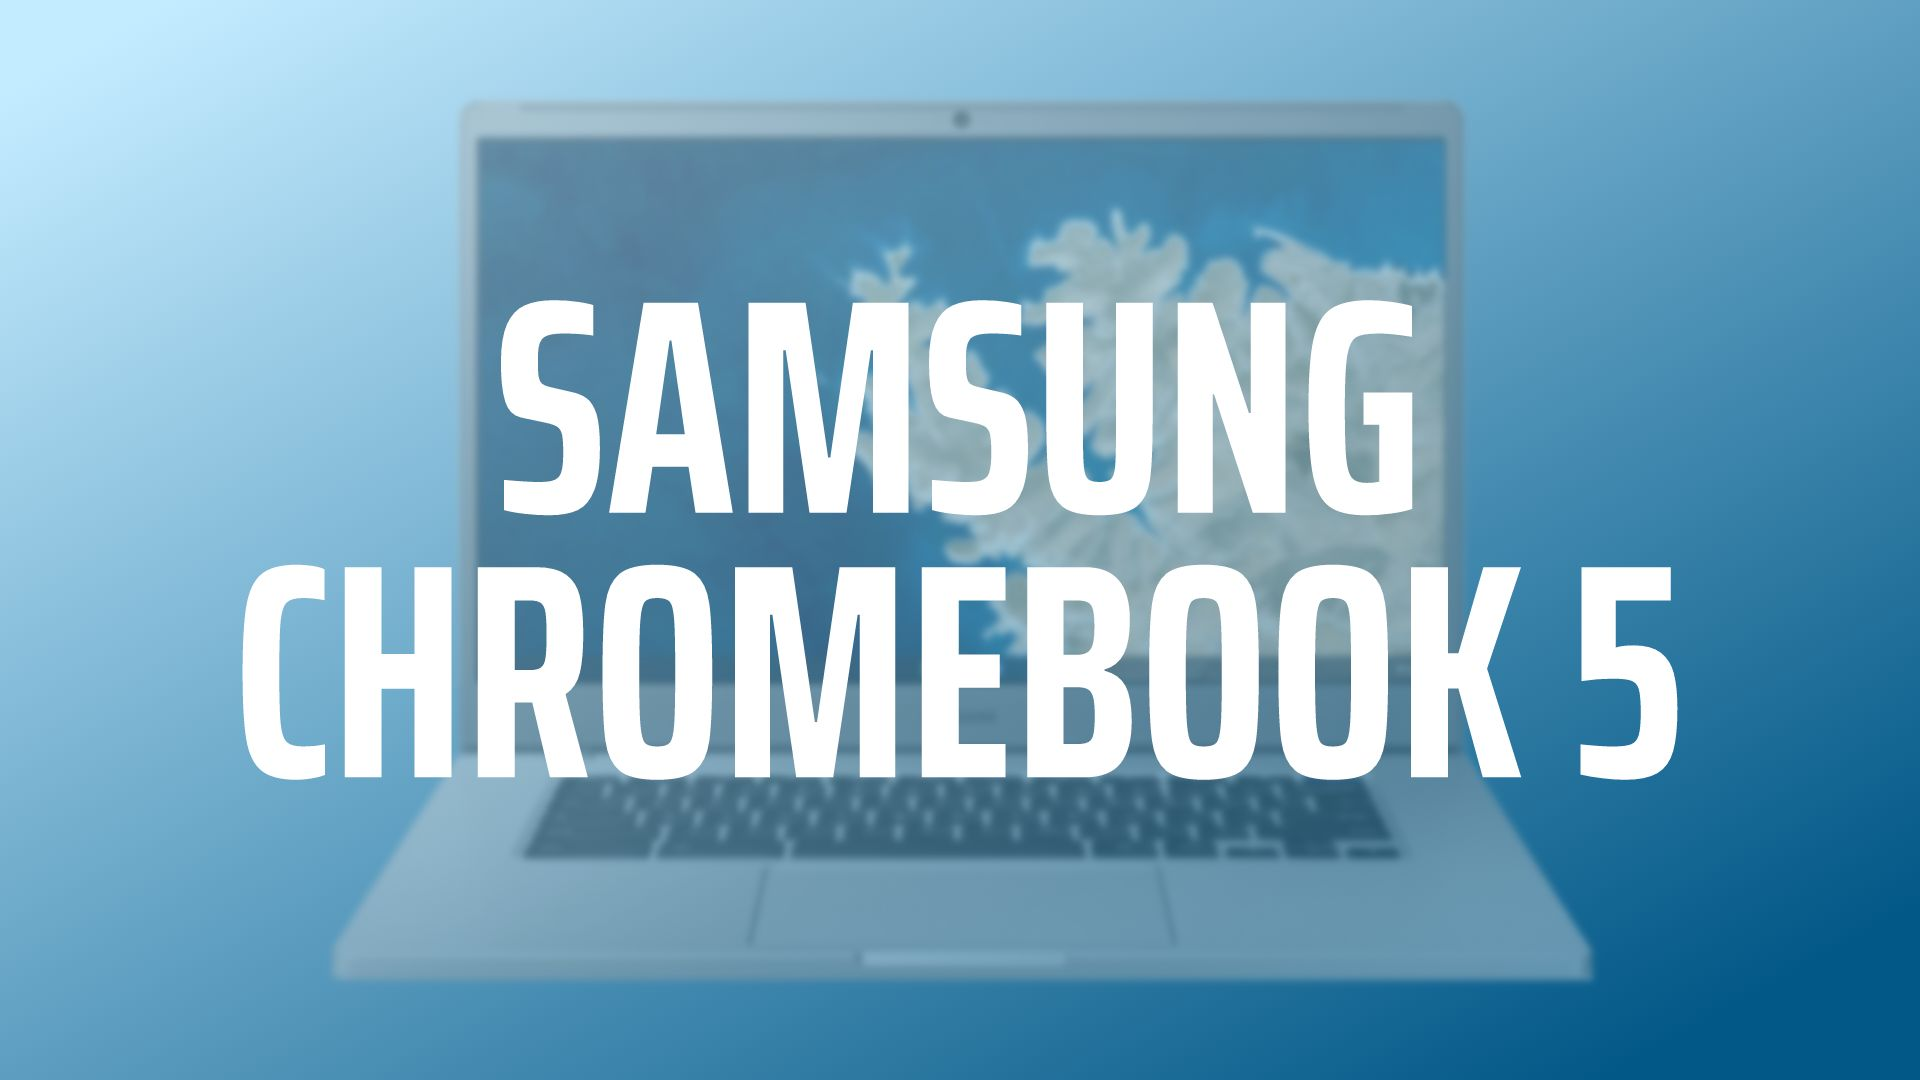 Why we think the Samsung Chromebook 5 could be coming soon